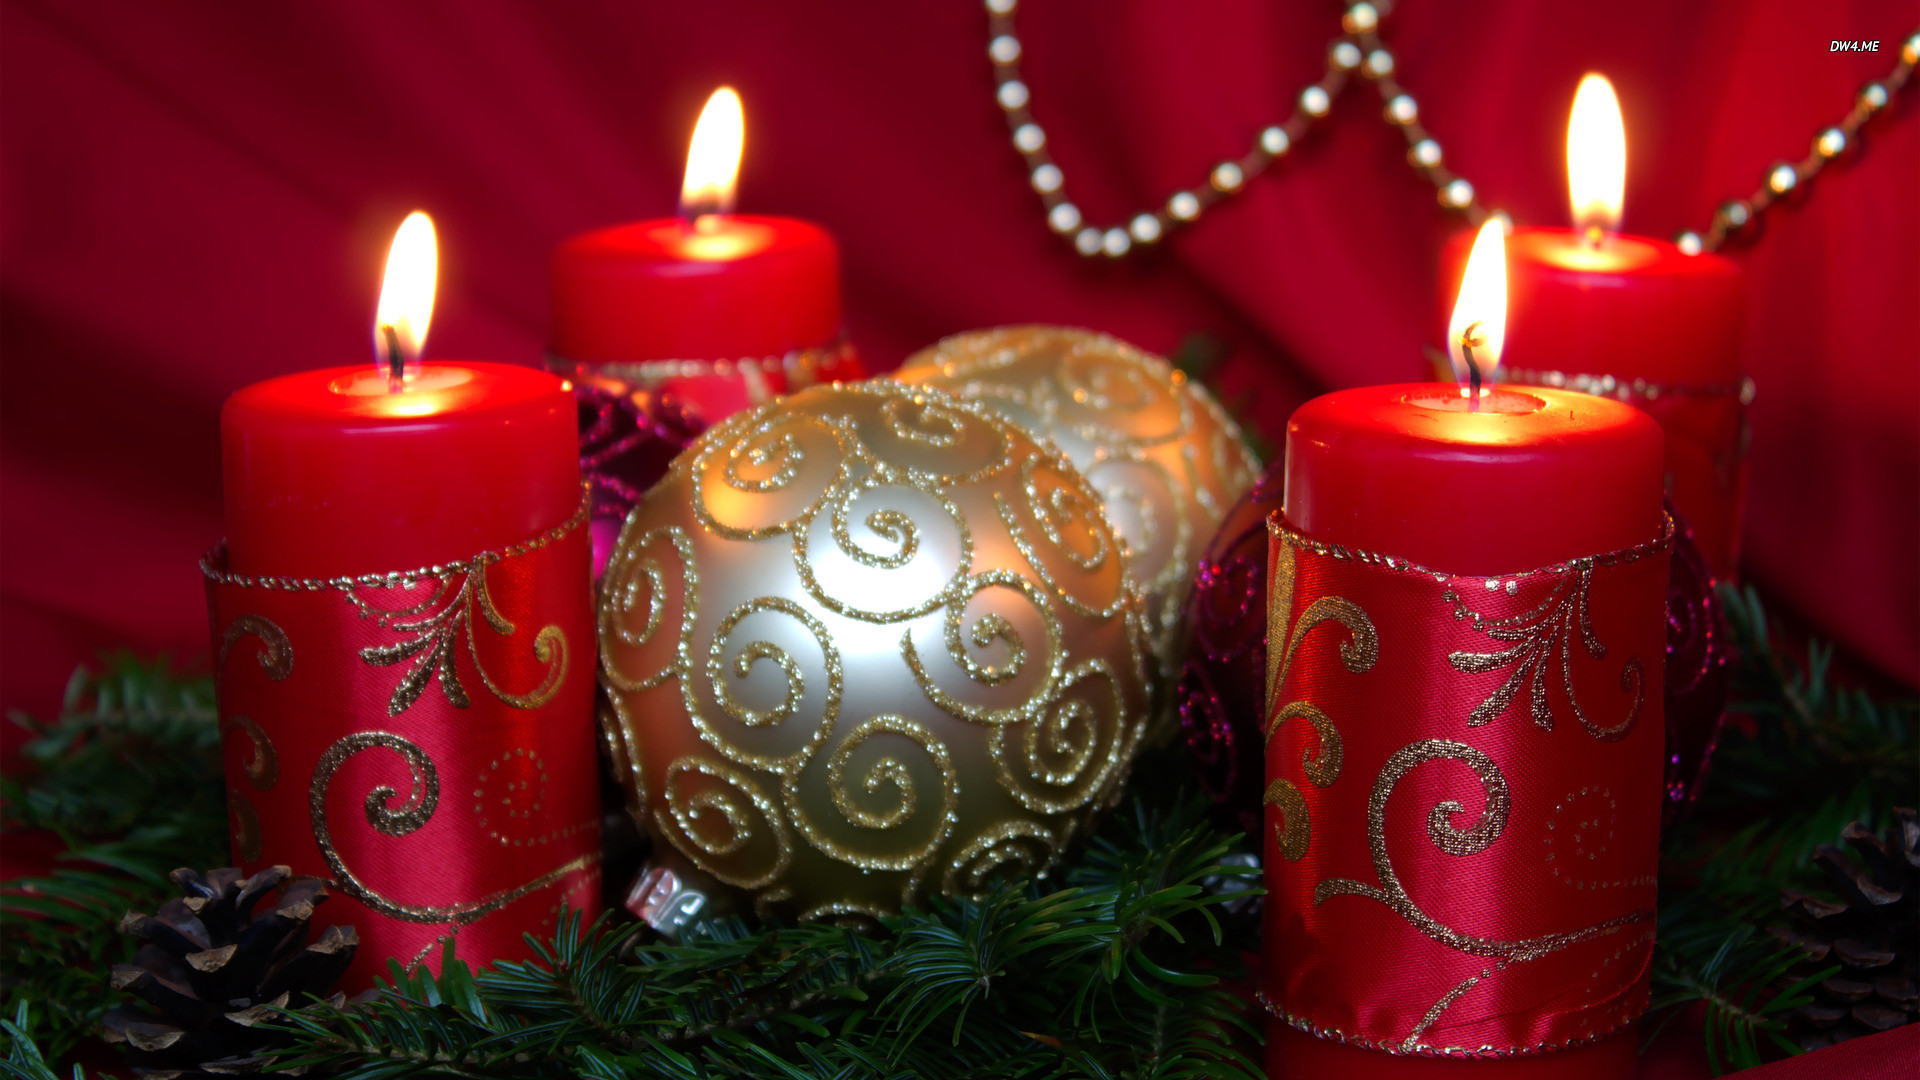 Filename: 1050-advent-candles-1920×1080-photography-wallpaper.jpg